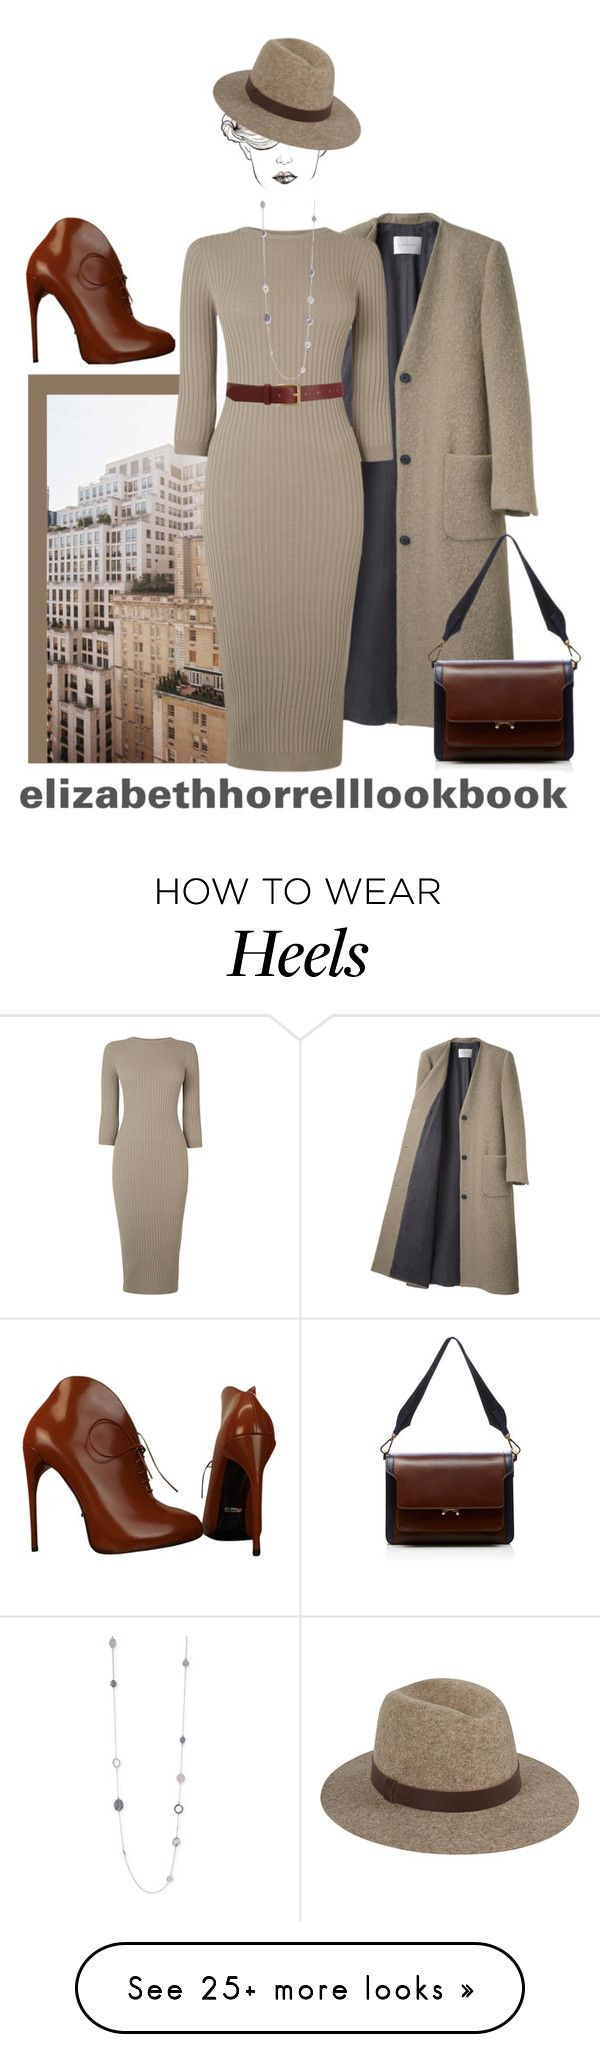 """LIZ"" by elizabethhorrell on Polyvore featuring La Garçonne Moderne, Louis Vuitton, Warehouse, Gucci, Marni, Barneys New York, Kenneth Cole, women's clothing, women's fashion and women"